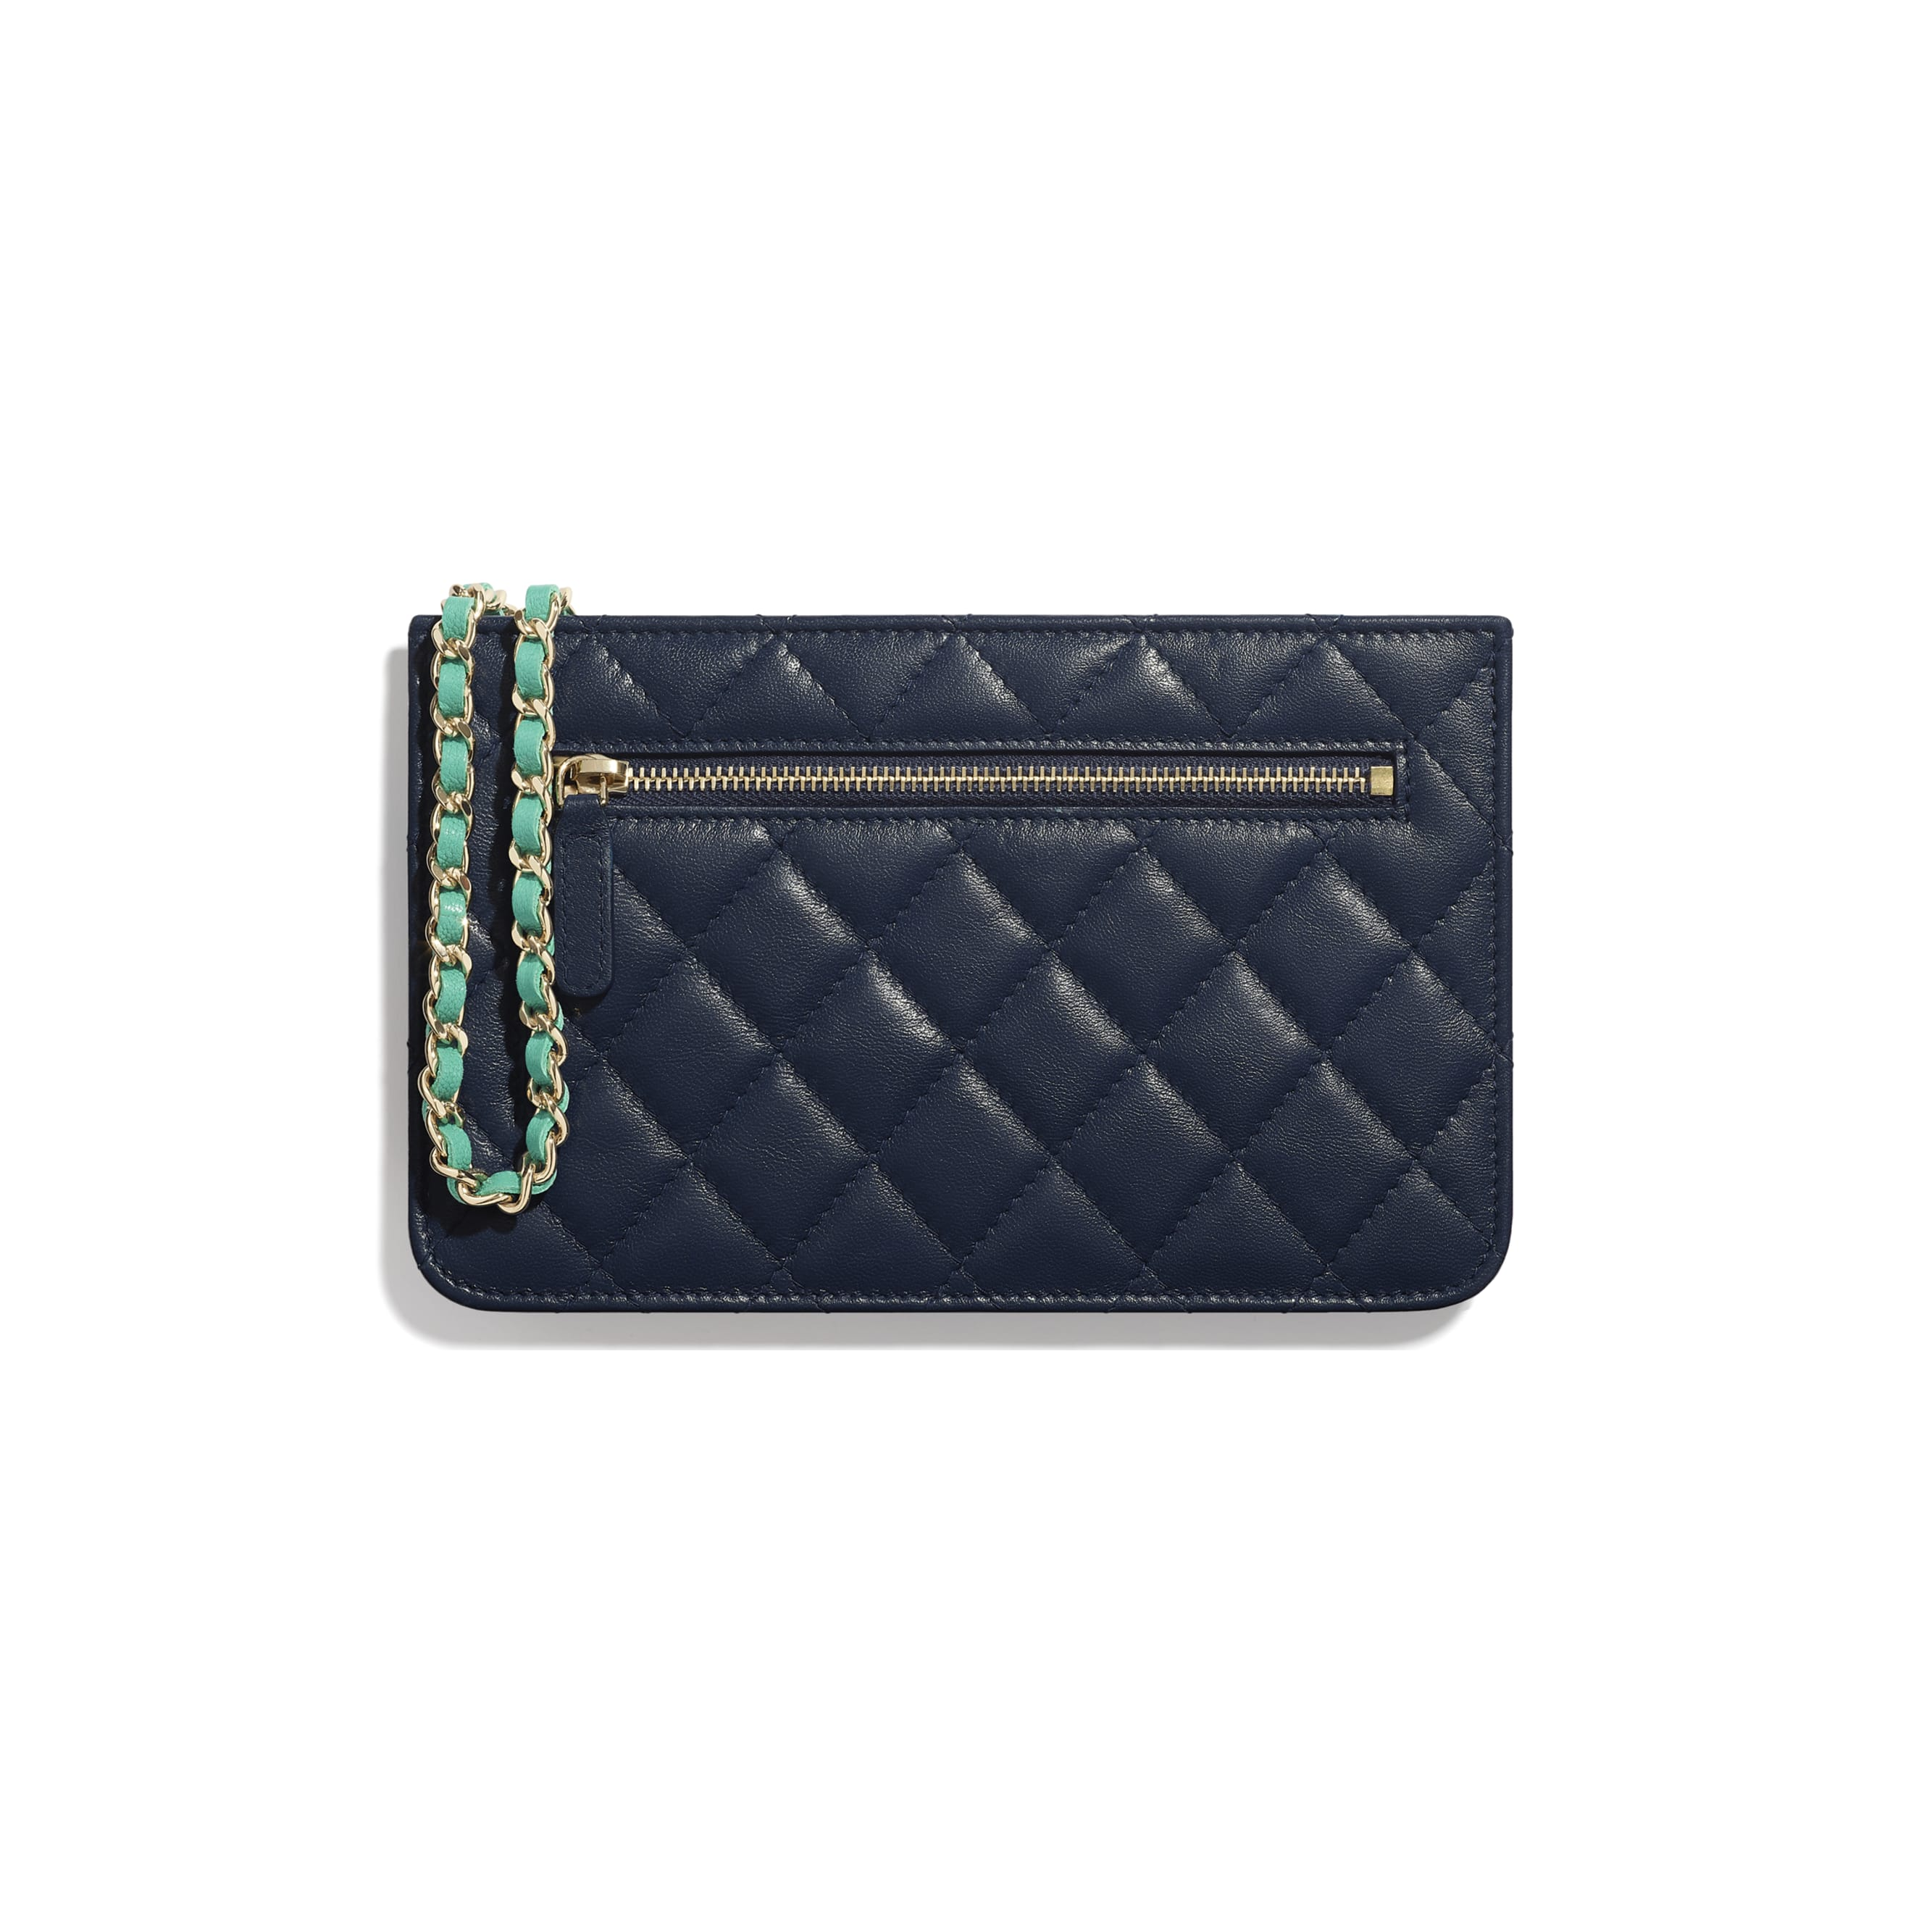 Clutch With Chain - Navy Blue, Green & Dark Pink - Goatskin & Gold-Tone Metal - Alternative view - see standard sized version